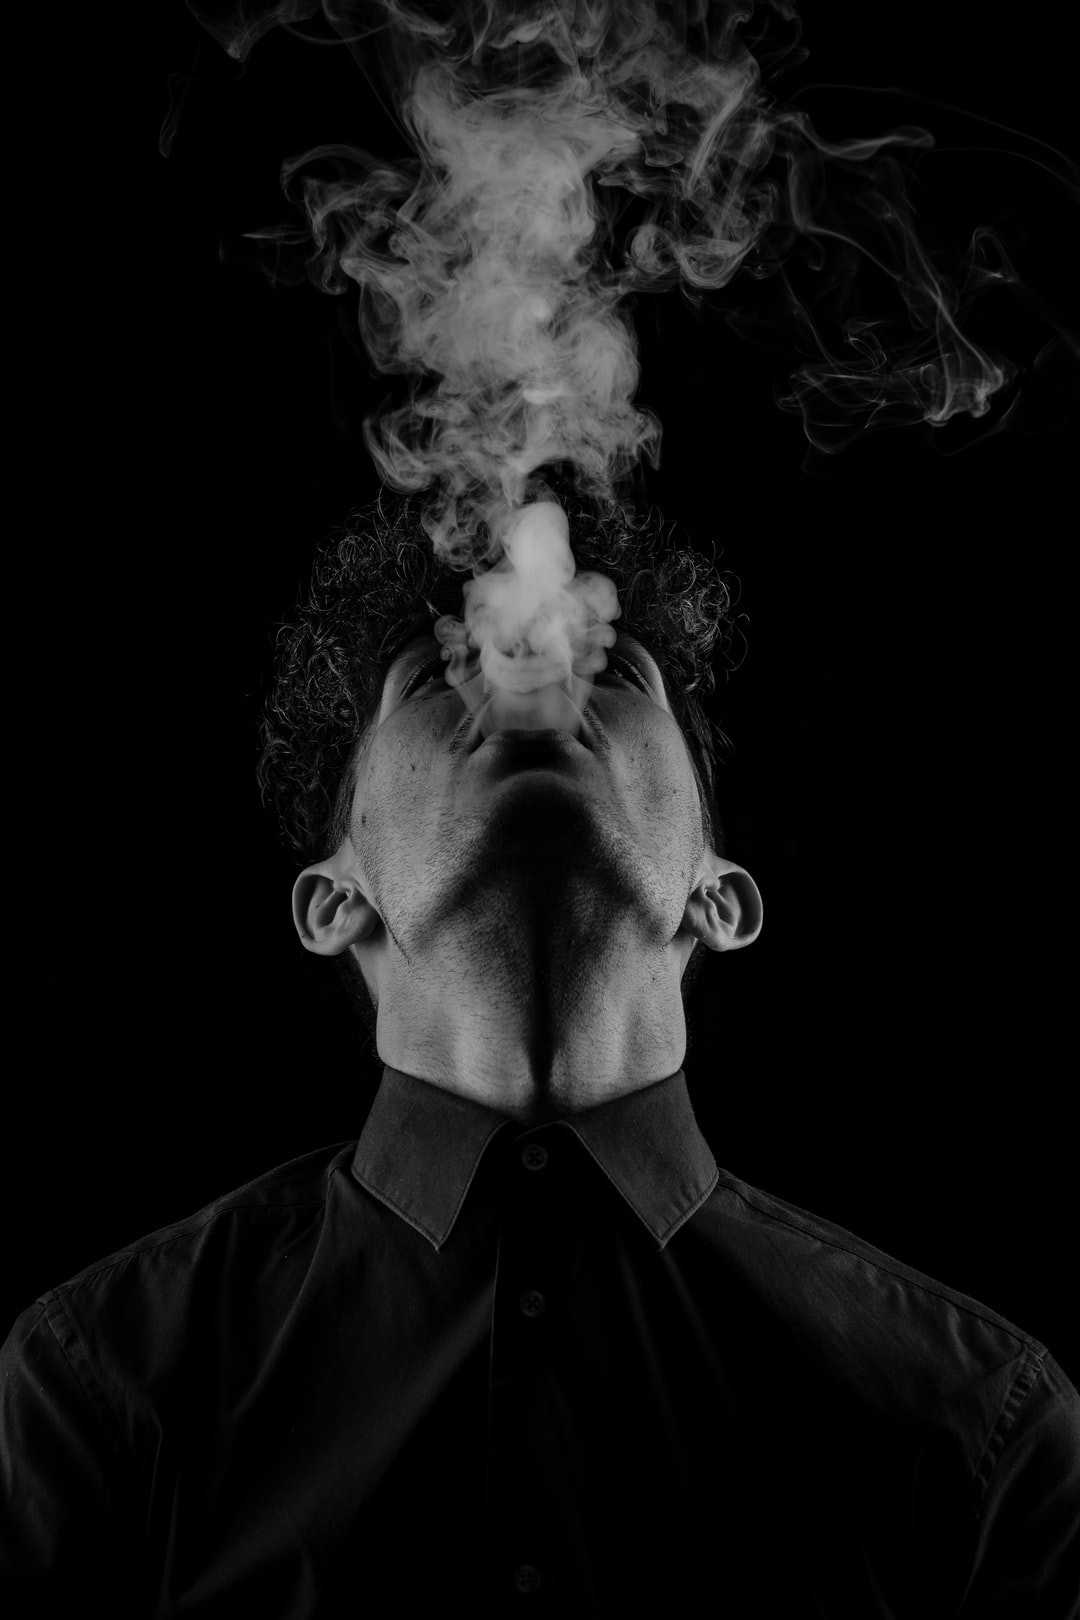 Black and white photo of a men smoking